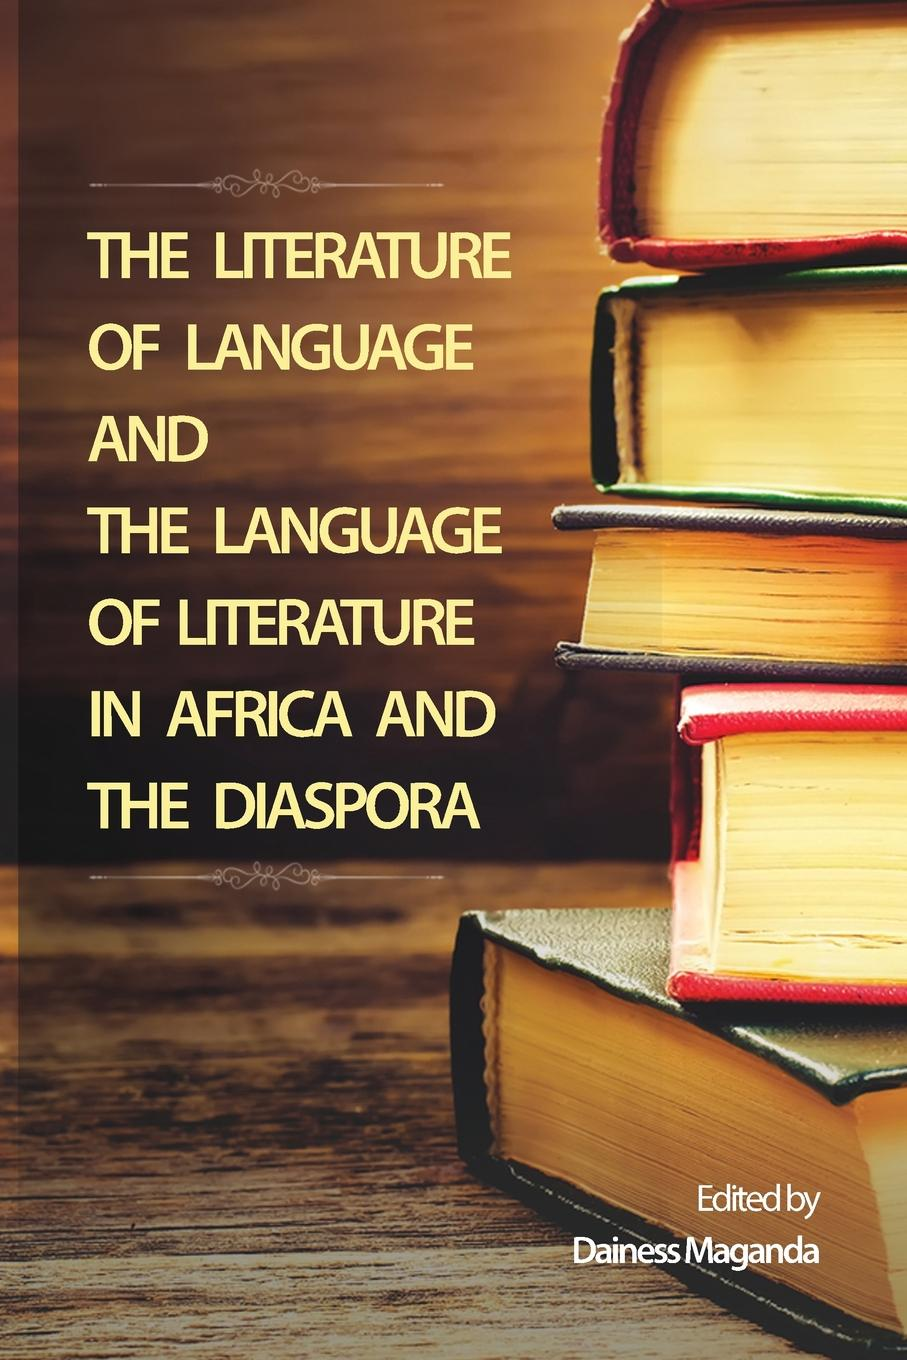 The Literature of Language and the Language of Literature in Africa and the Diaspora parmod kumar literature and marginality emerging perspectives in dalit literature